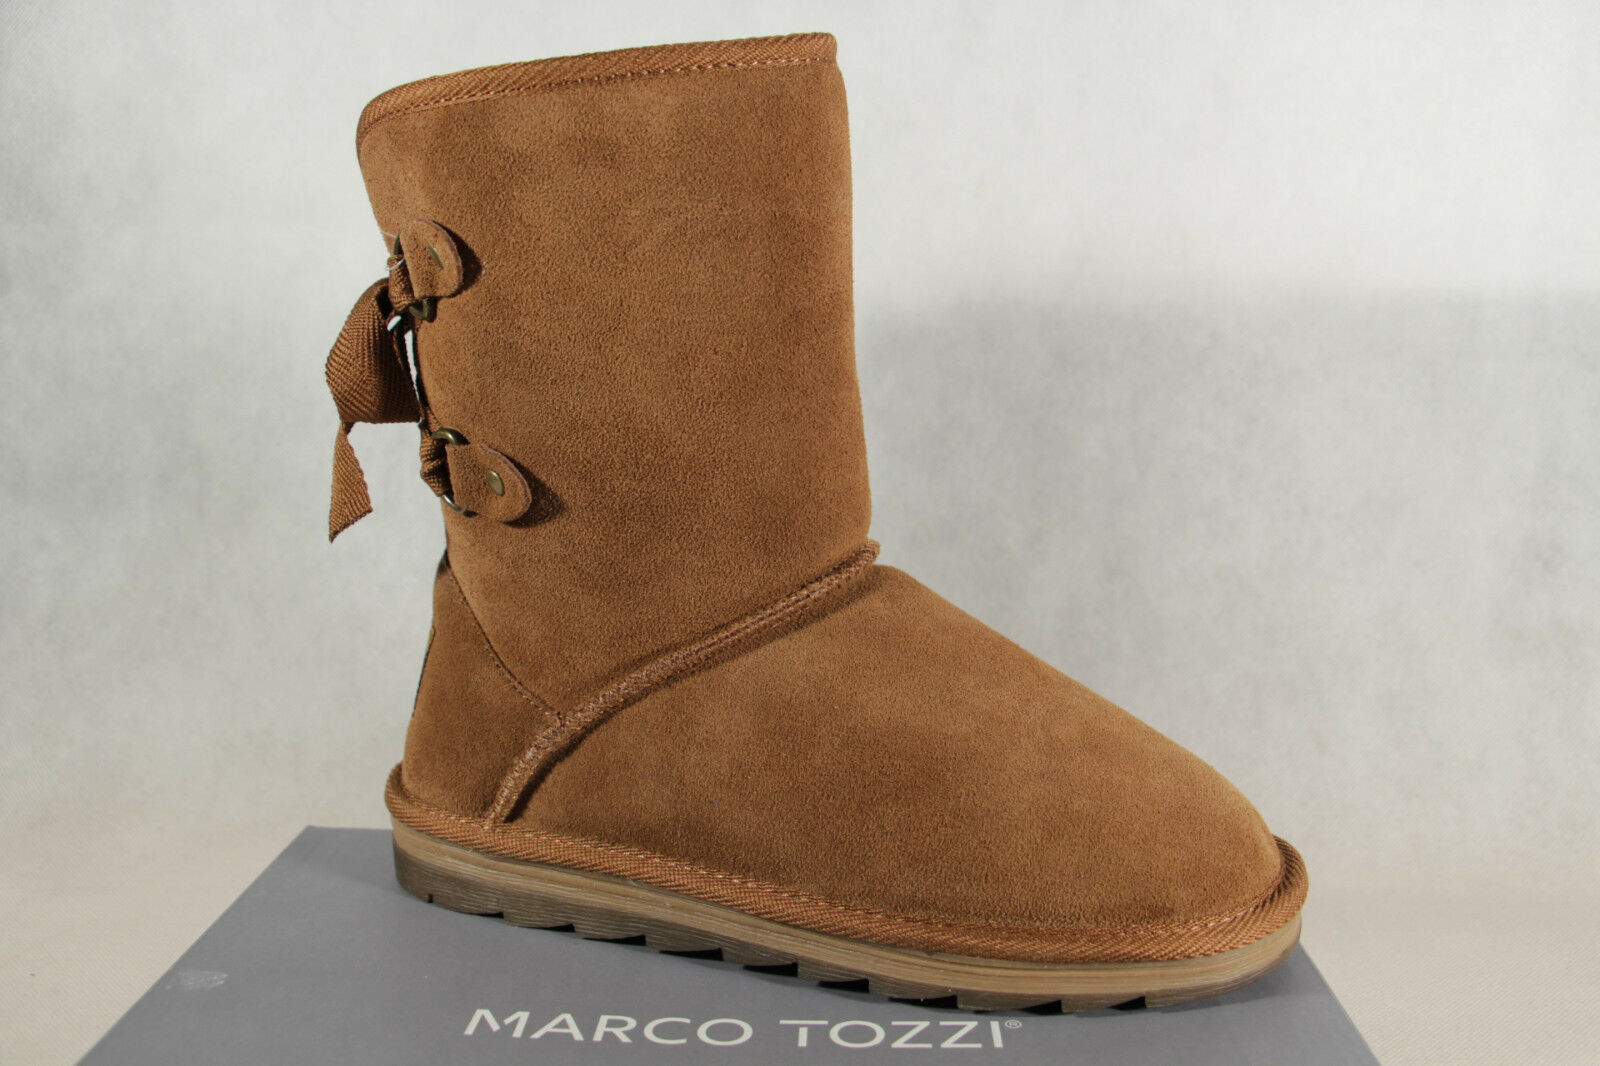 MARCO TOZZI Boots Ankle Boot Boots Winter Boots Brown 26823 NEW